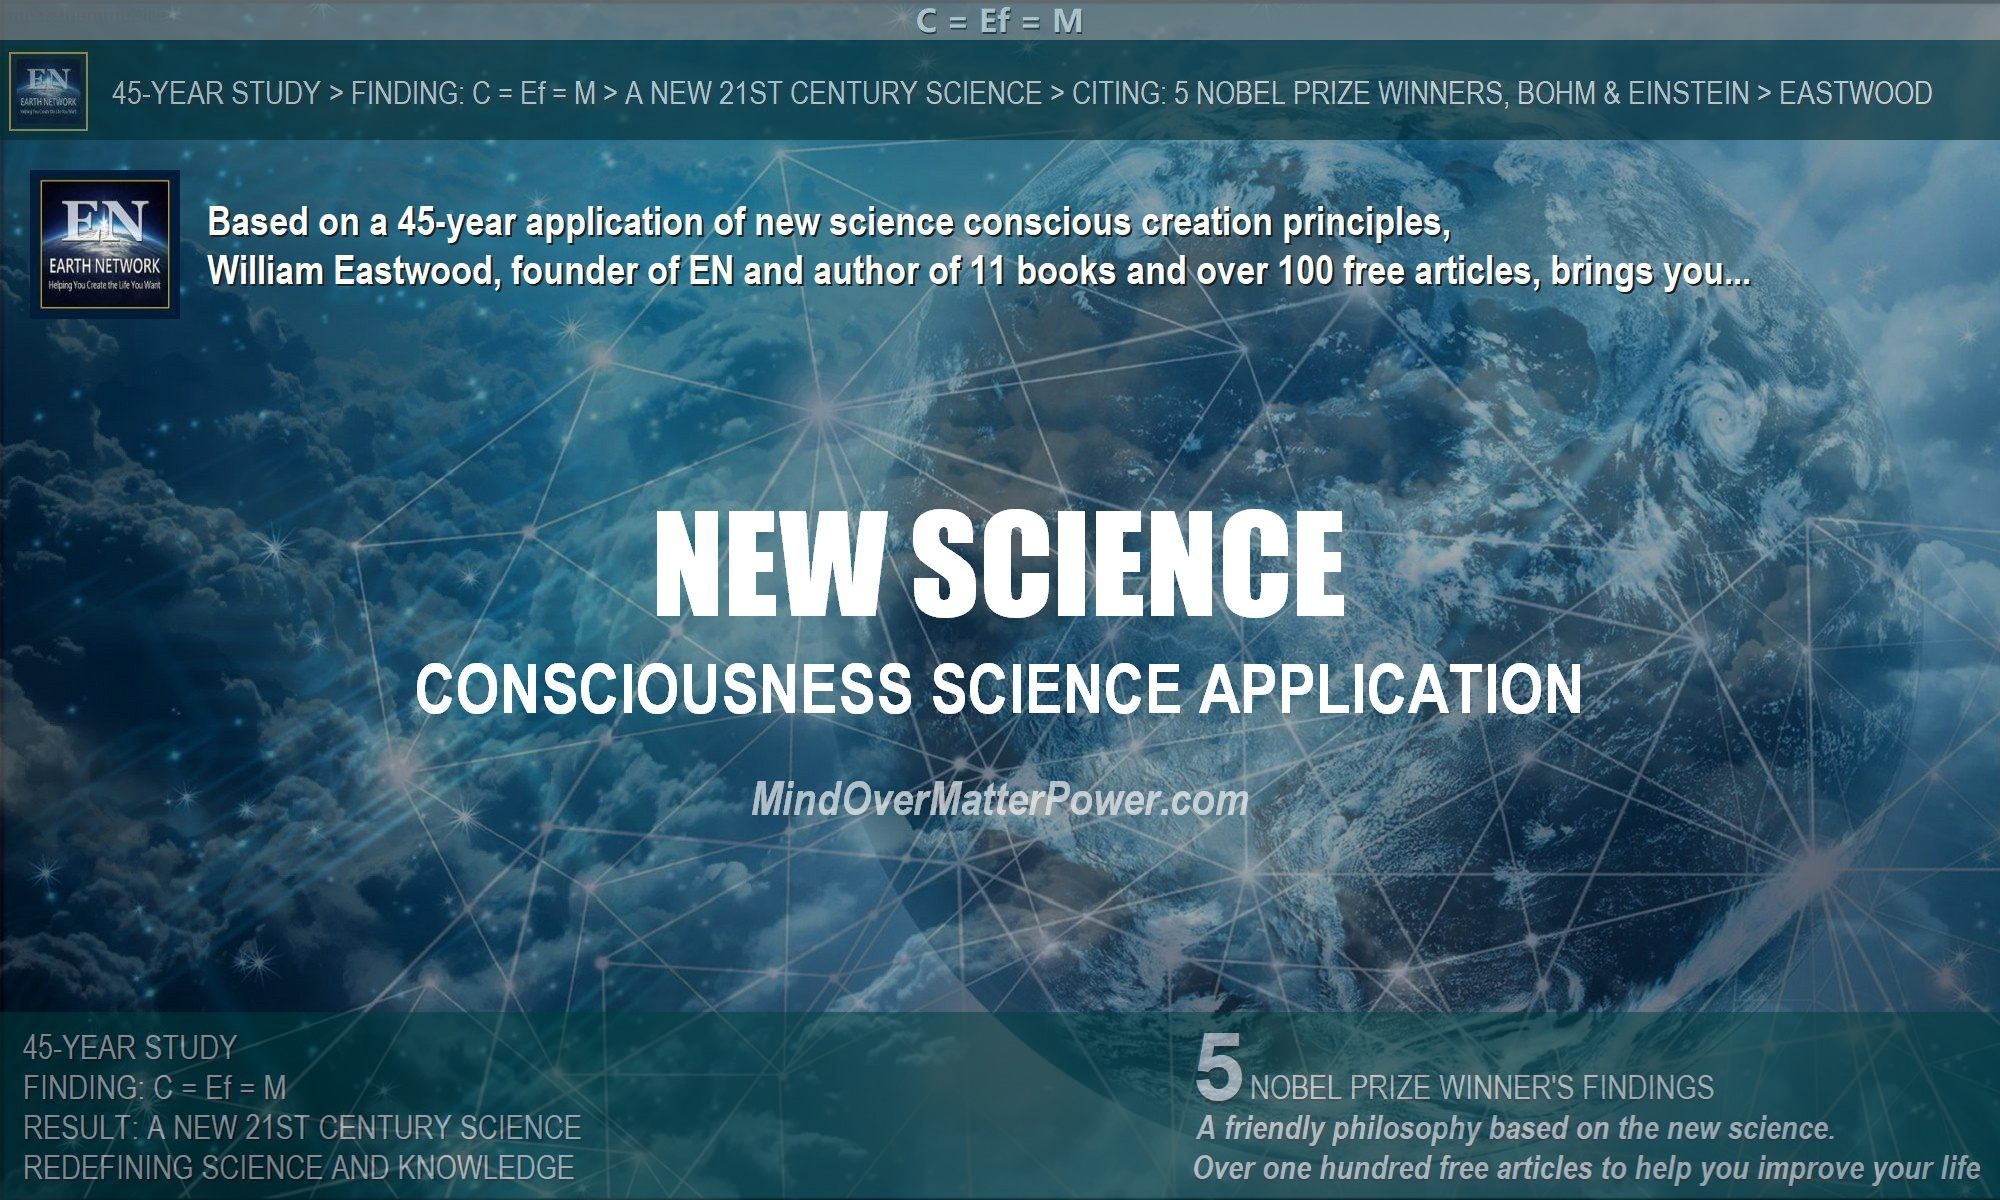 Consciousness science application-metaphysics-education-2021